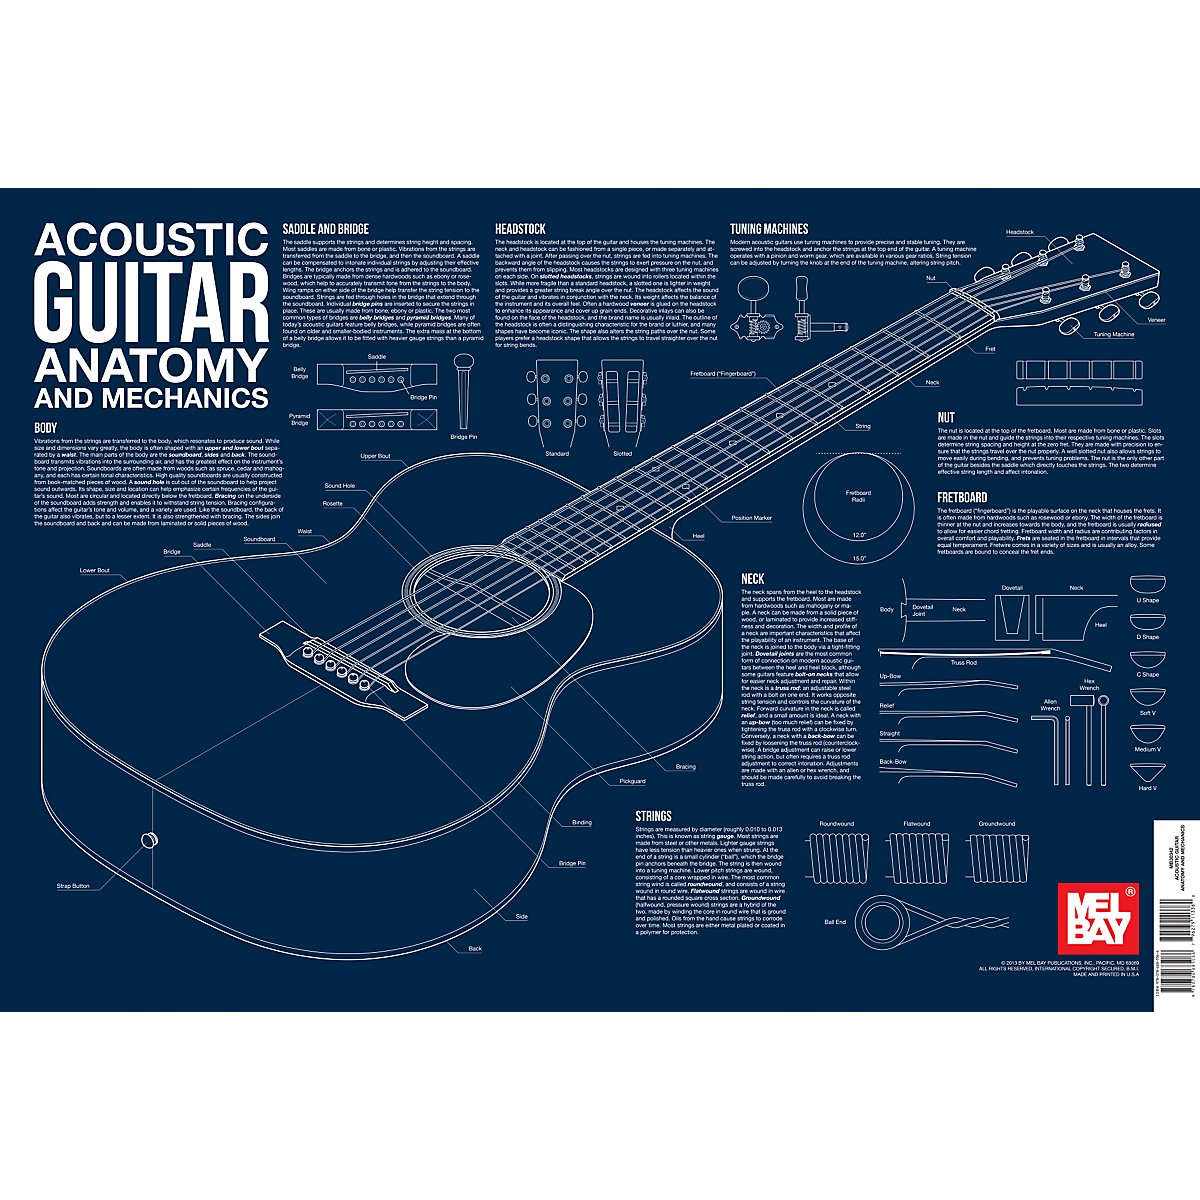 Acoustic Guitar Anatomy And Mechanics Wall Chart Charlie Lee